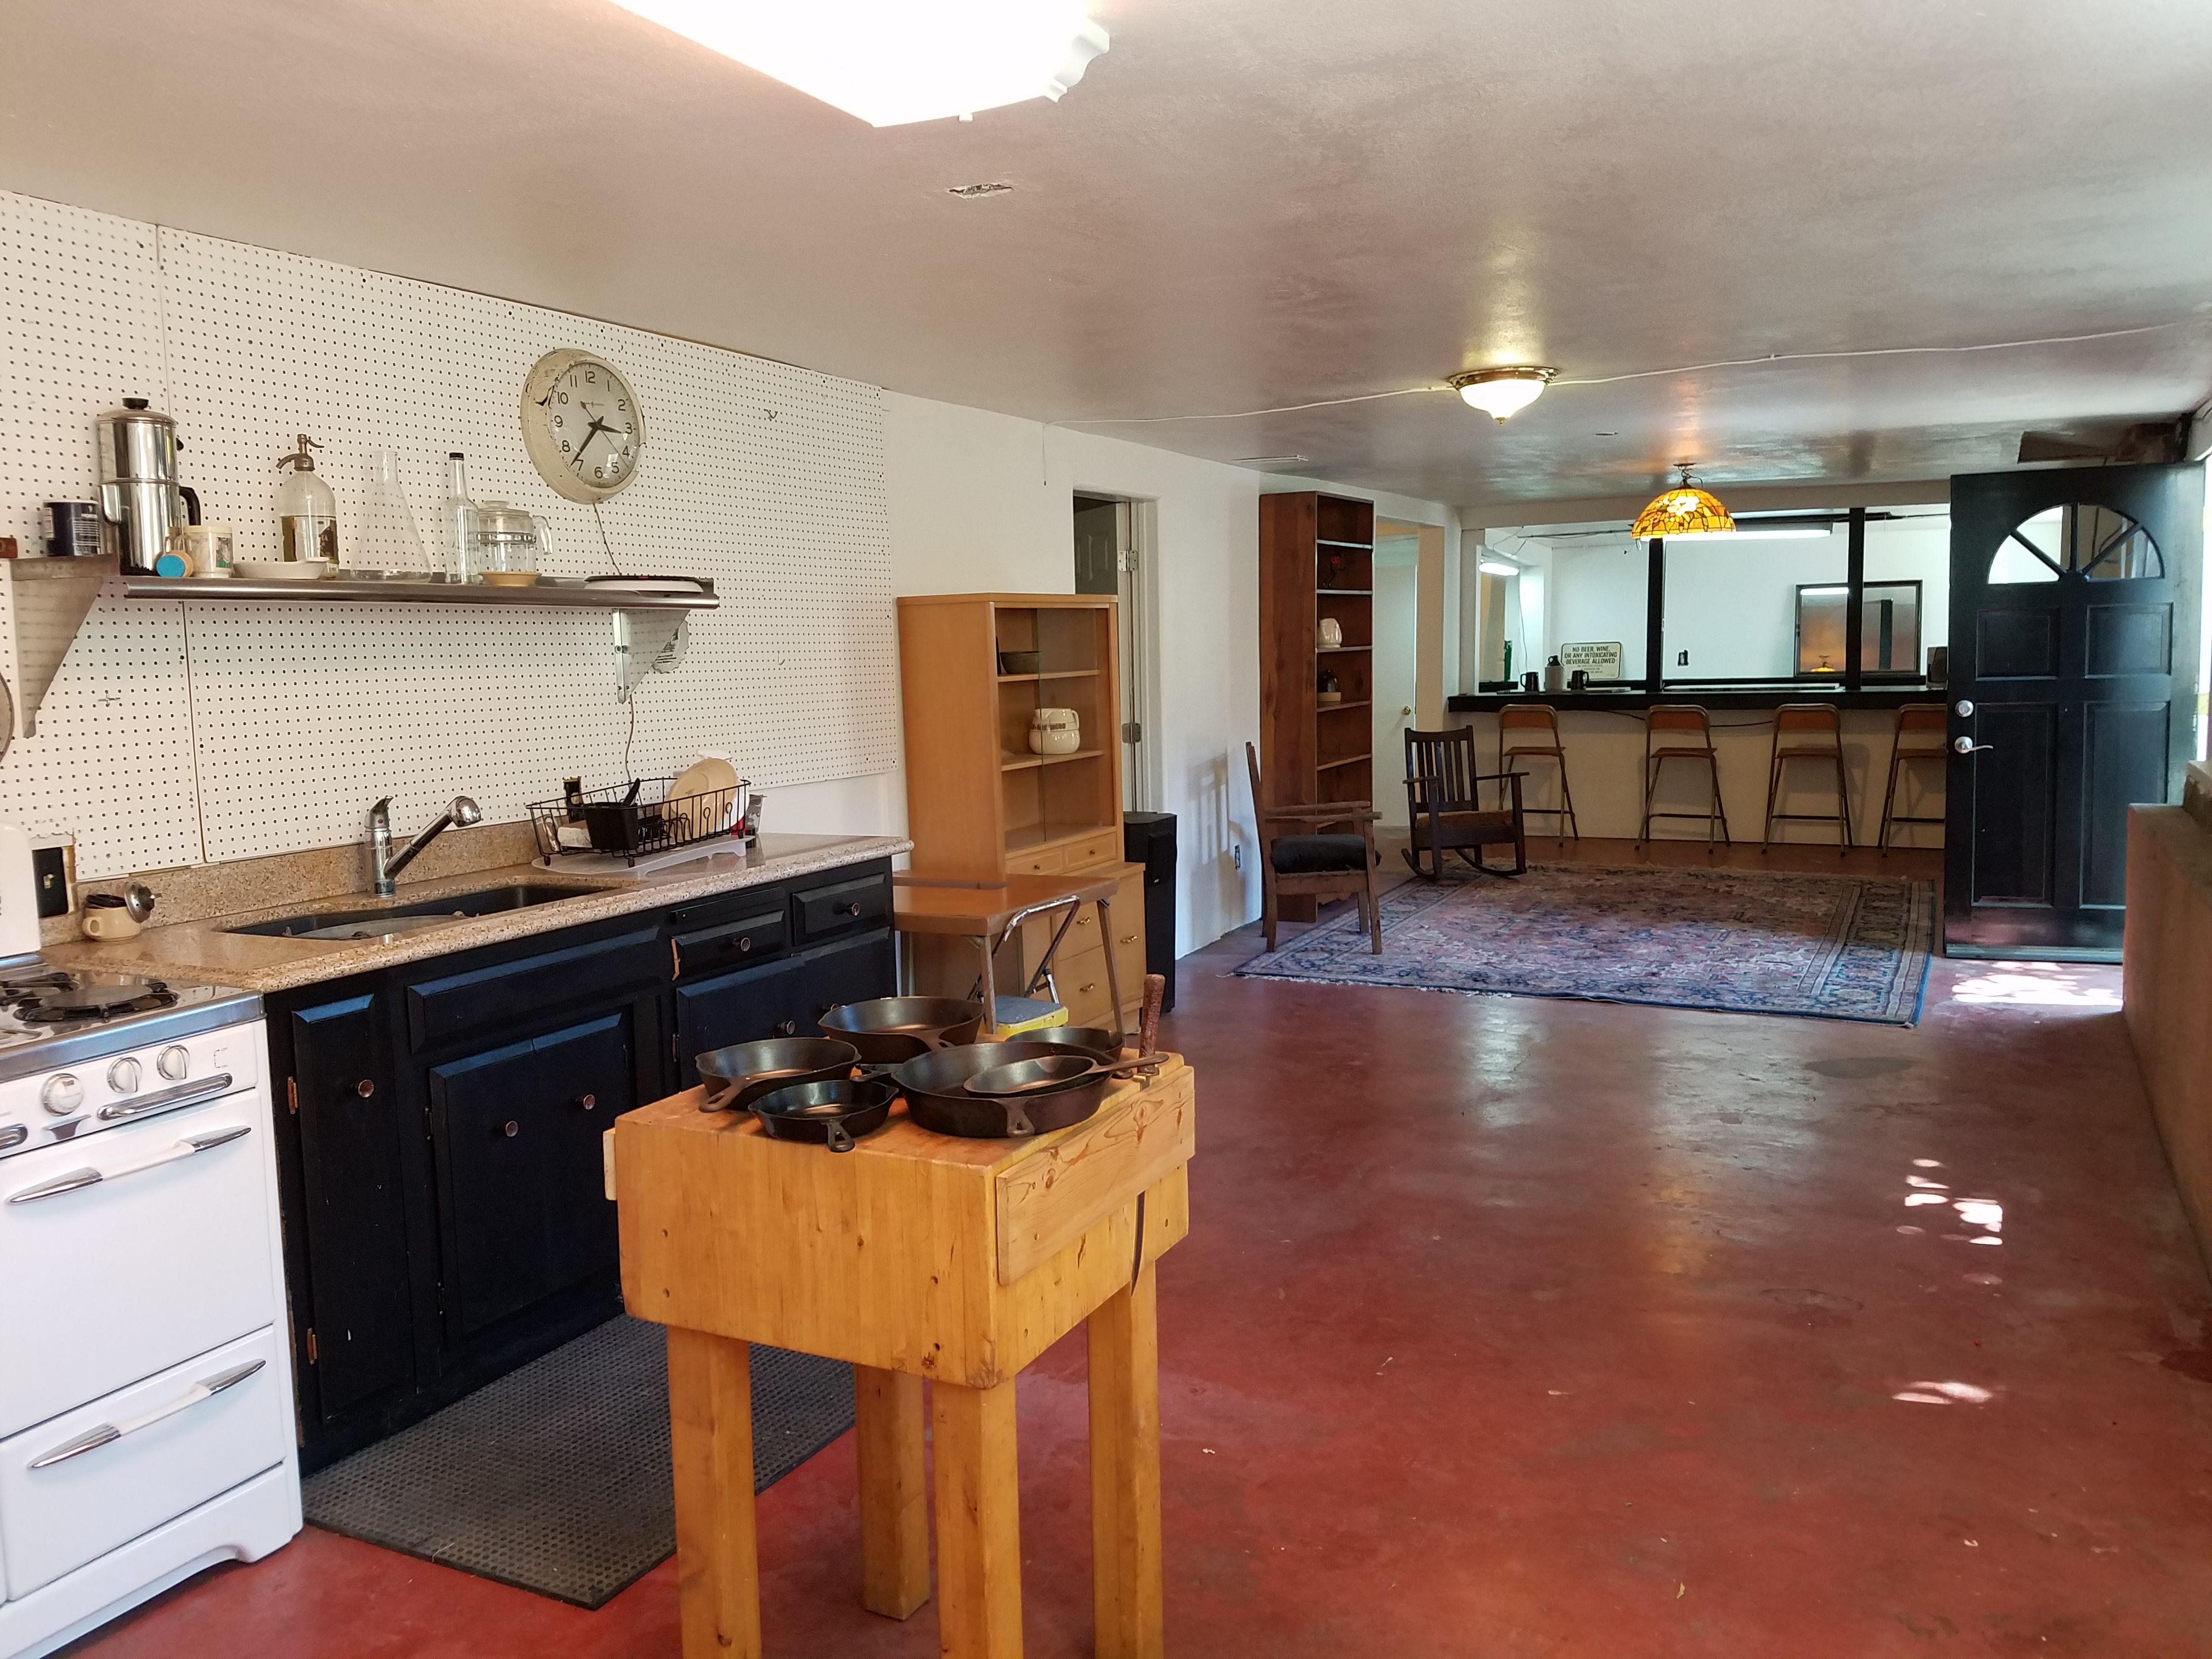 Huge Basement A Separate Living Space Or Rental. 455 Washington St, San Jose ,